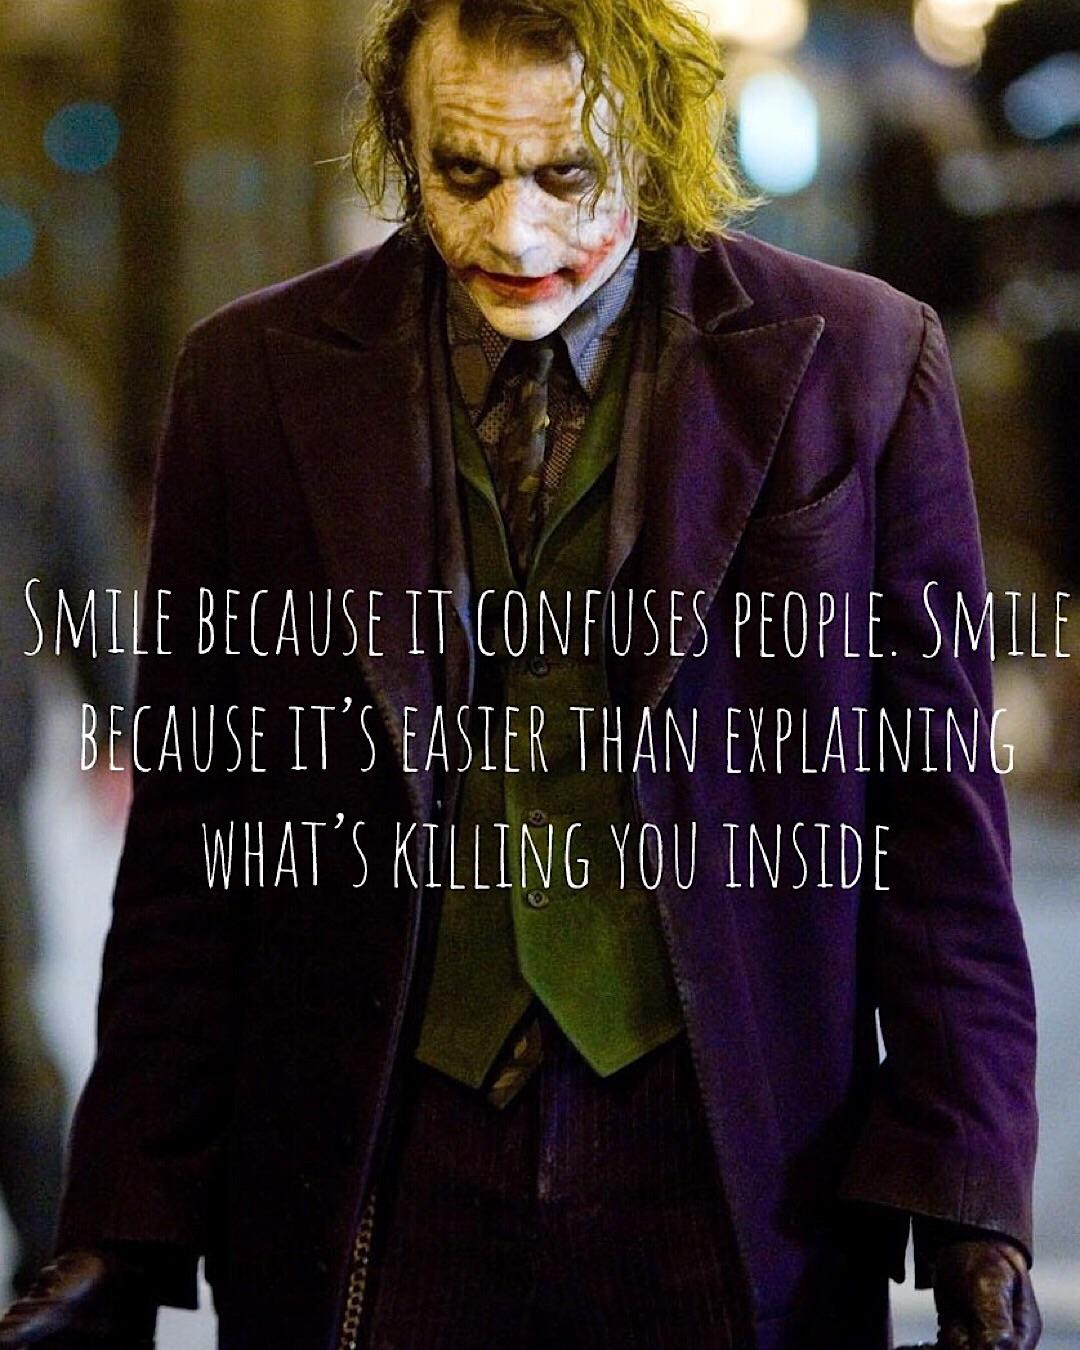 """Smile because it confuses people. Smile because it's easier than explaining what's killing you inside"" -Joker (Heath Ledger) [1080 x 1350]"